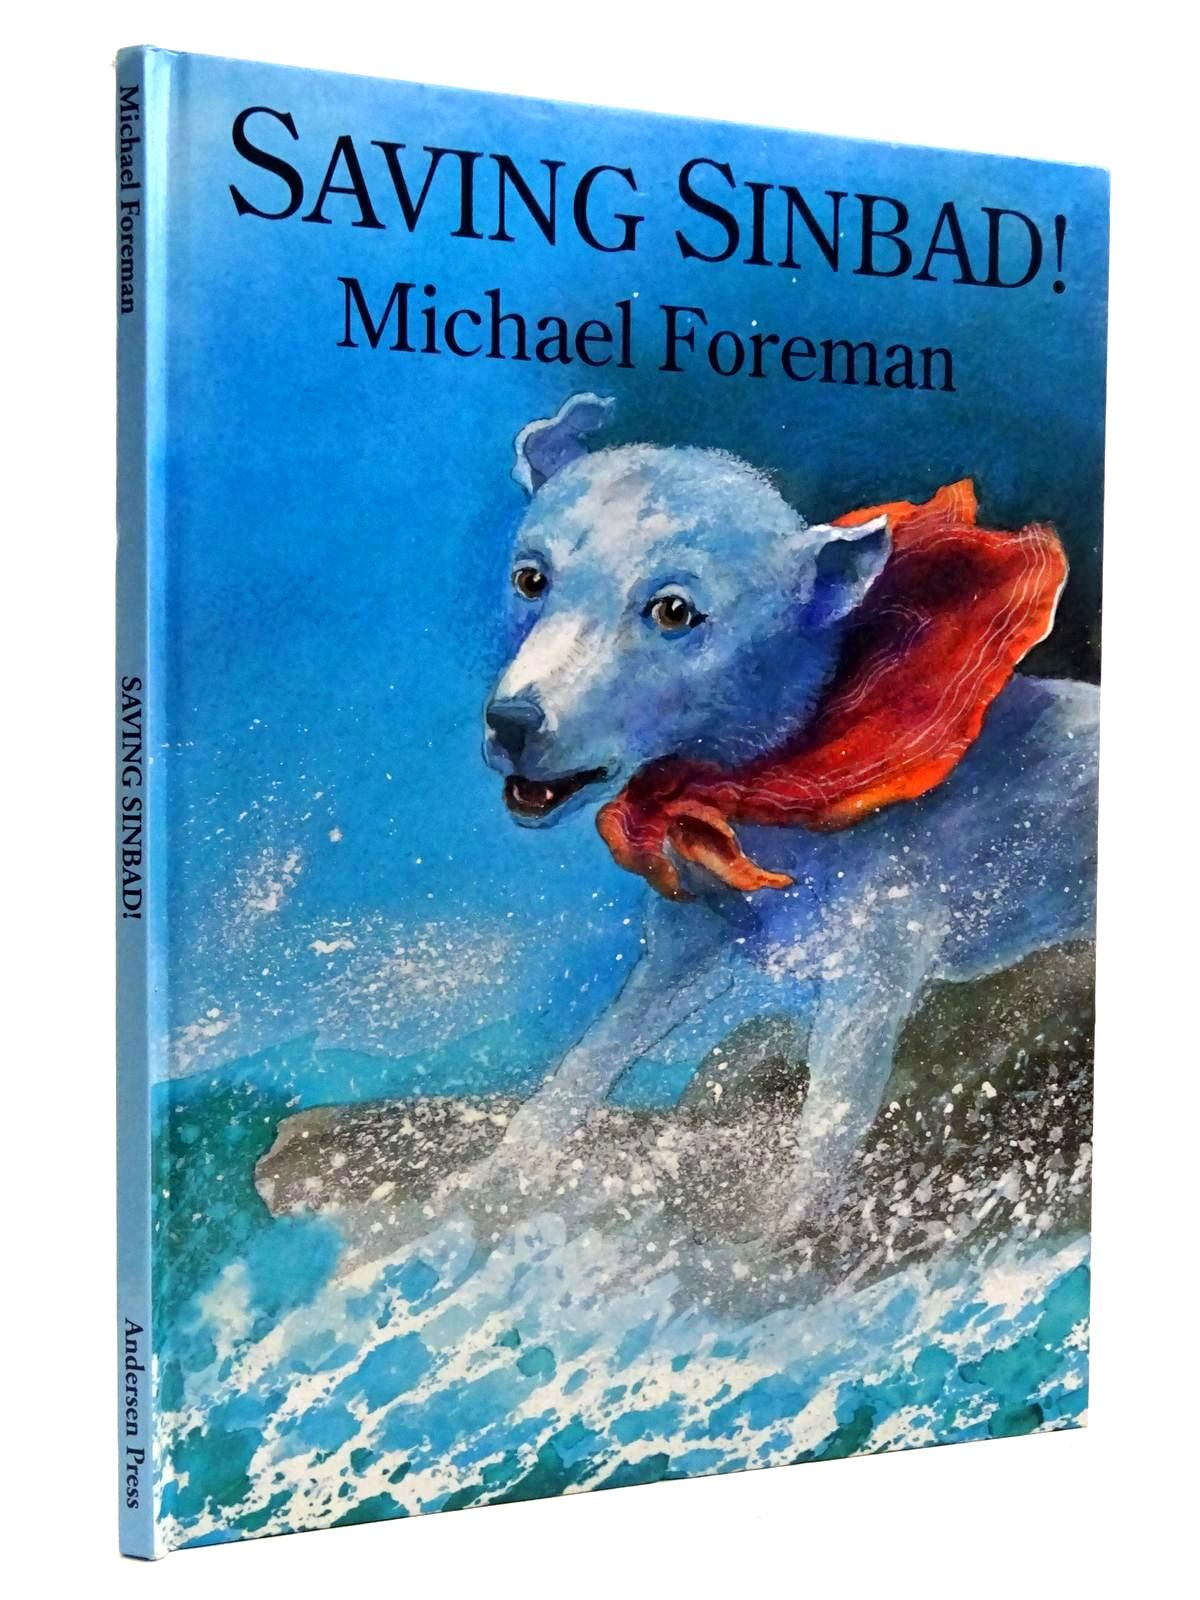 Photo of SAVING SINBAD! written by Foreman, Michael illustrated by Foreman, Michael published by Andersen Press (STOCK CODE: 2131152)  for sale by Stella & Rose's Books